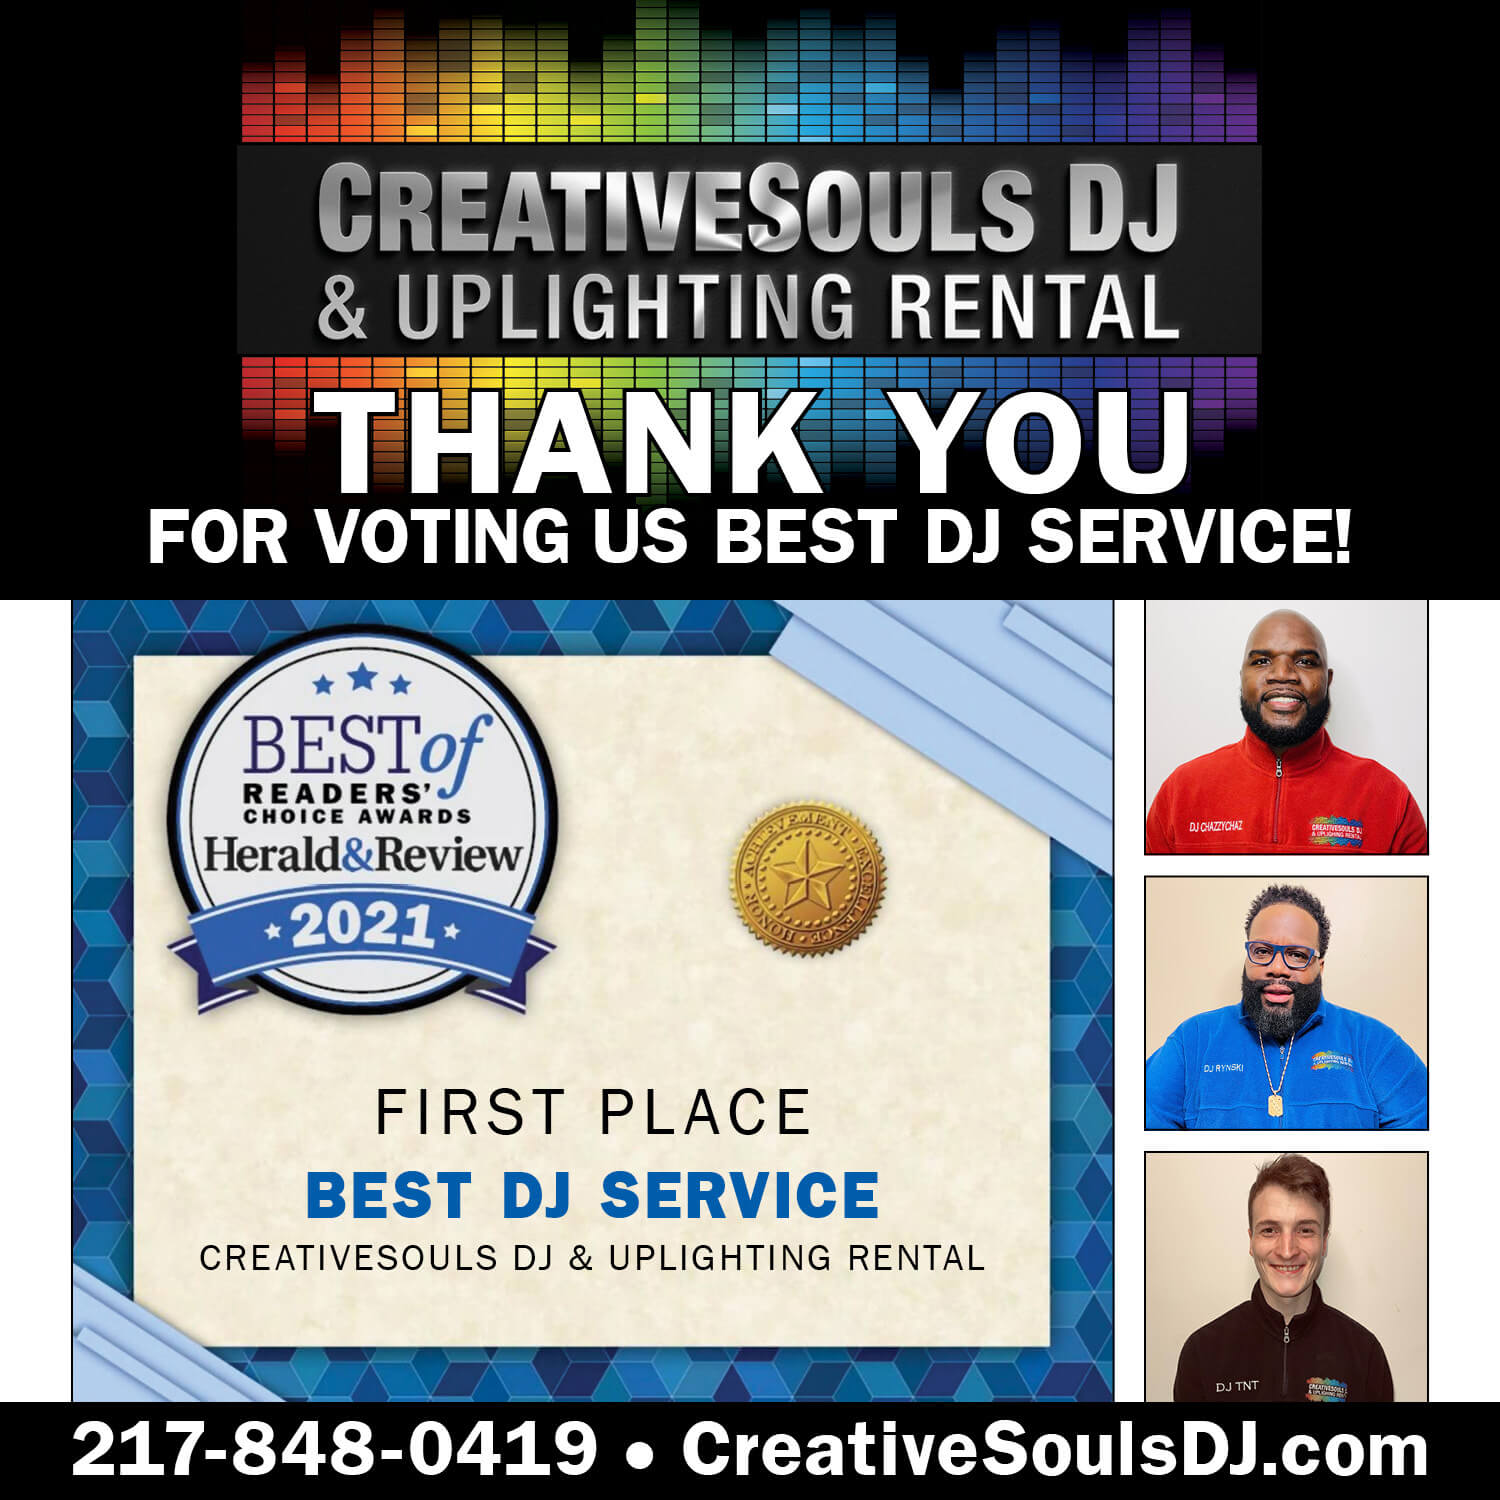 Creative Souls DJ & Uplighting Rental Thank you for voting us Best DJ Service! First Place Best DJ Service from Best of Readers' Choice Awards Herald & Review 2021